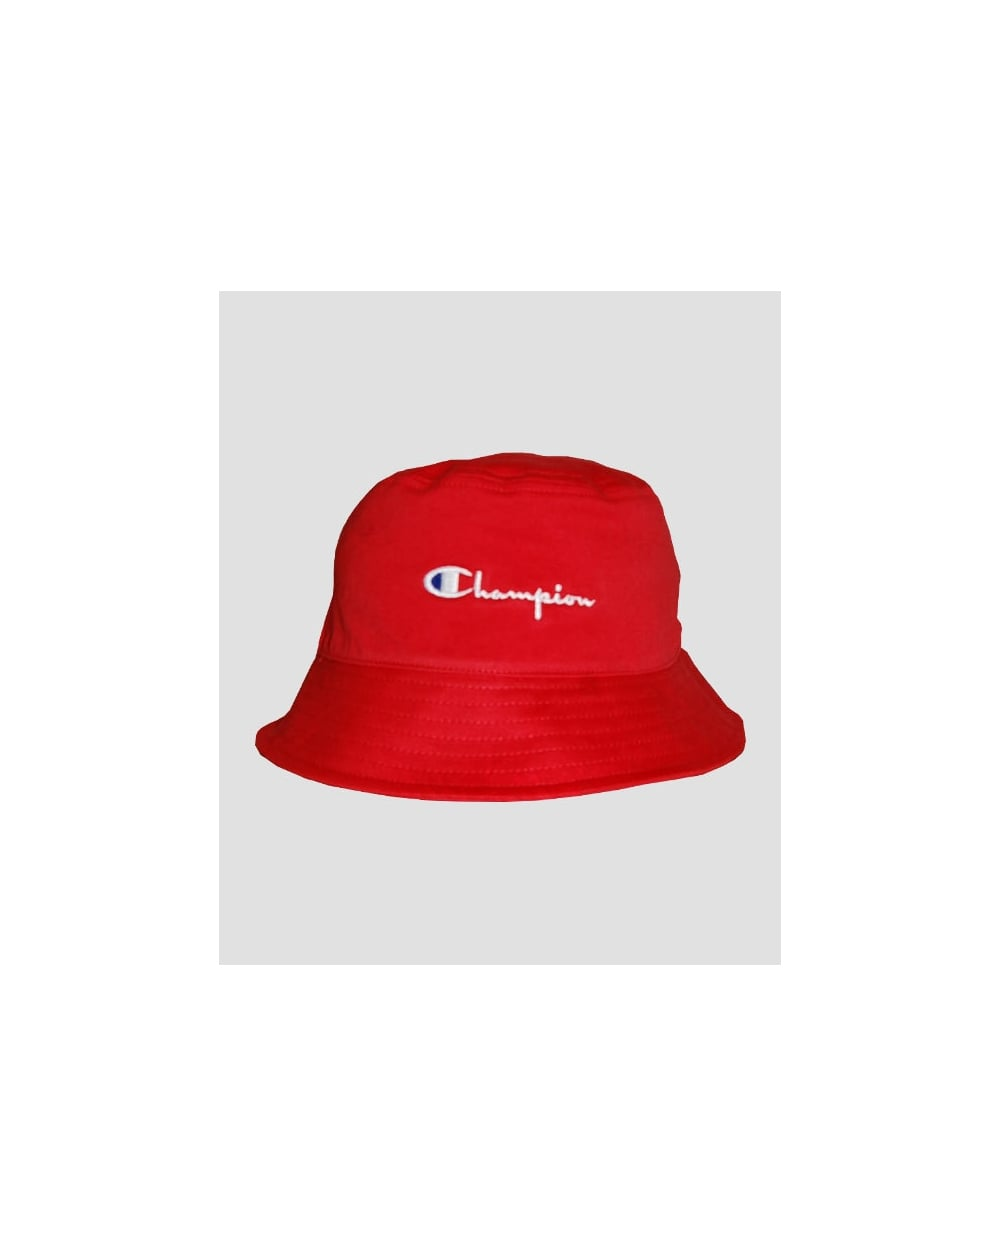 915ad75bc Champion Cotton Twill Bucket Hat Red - Hats And Caps from 80s Casual ...